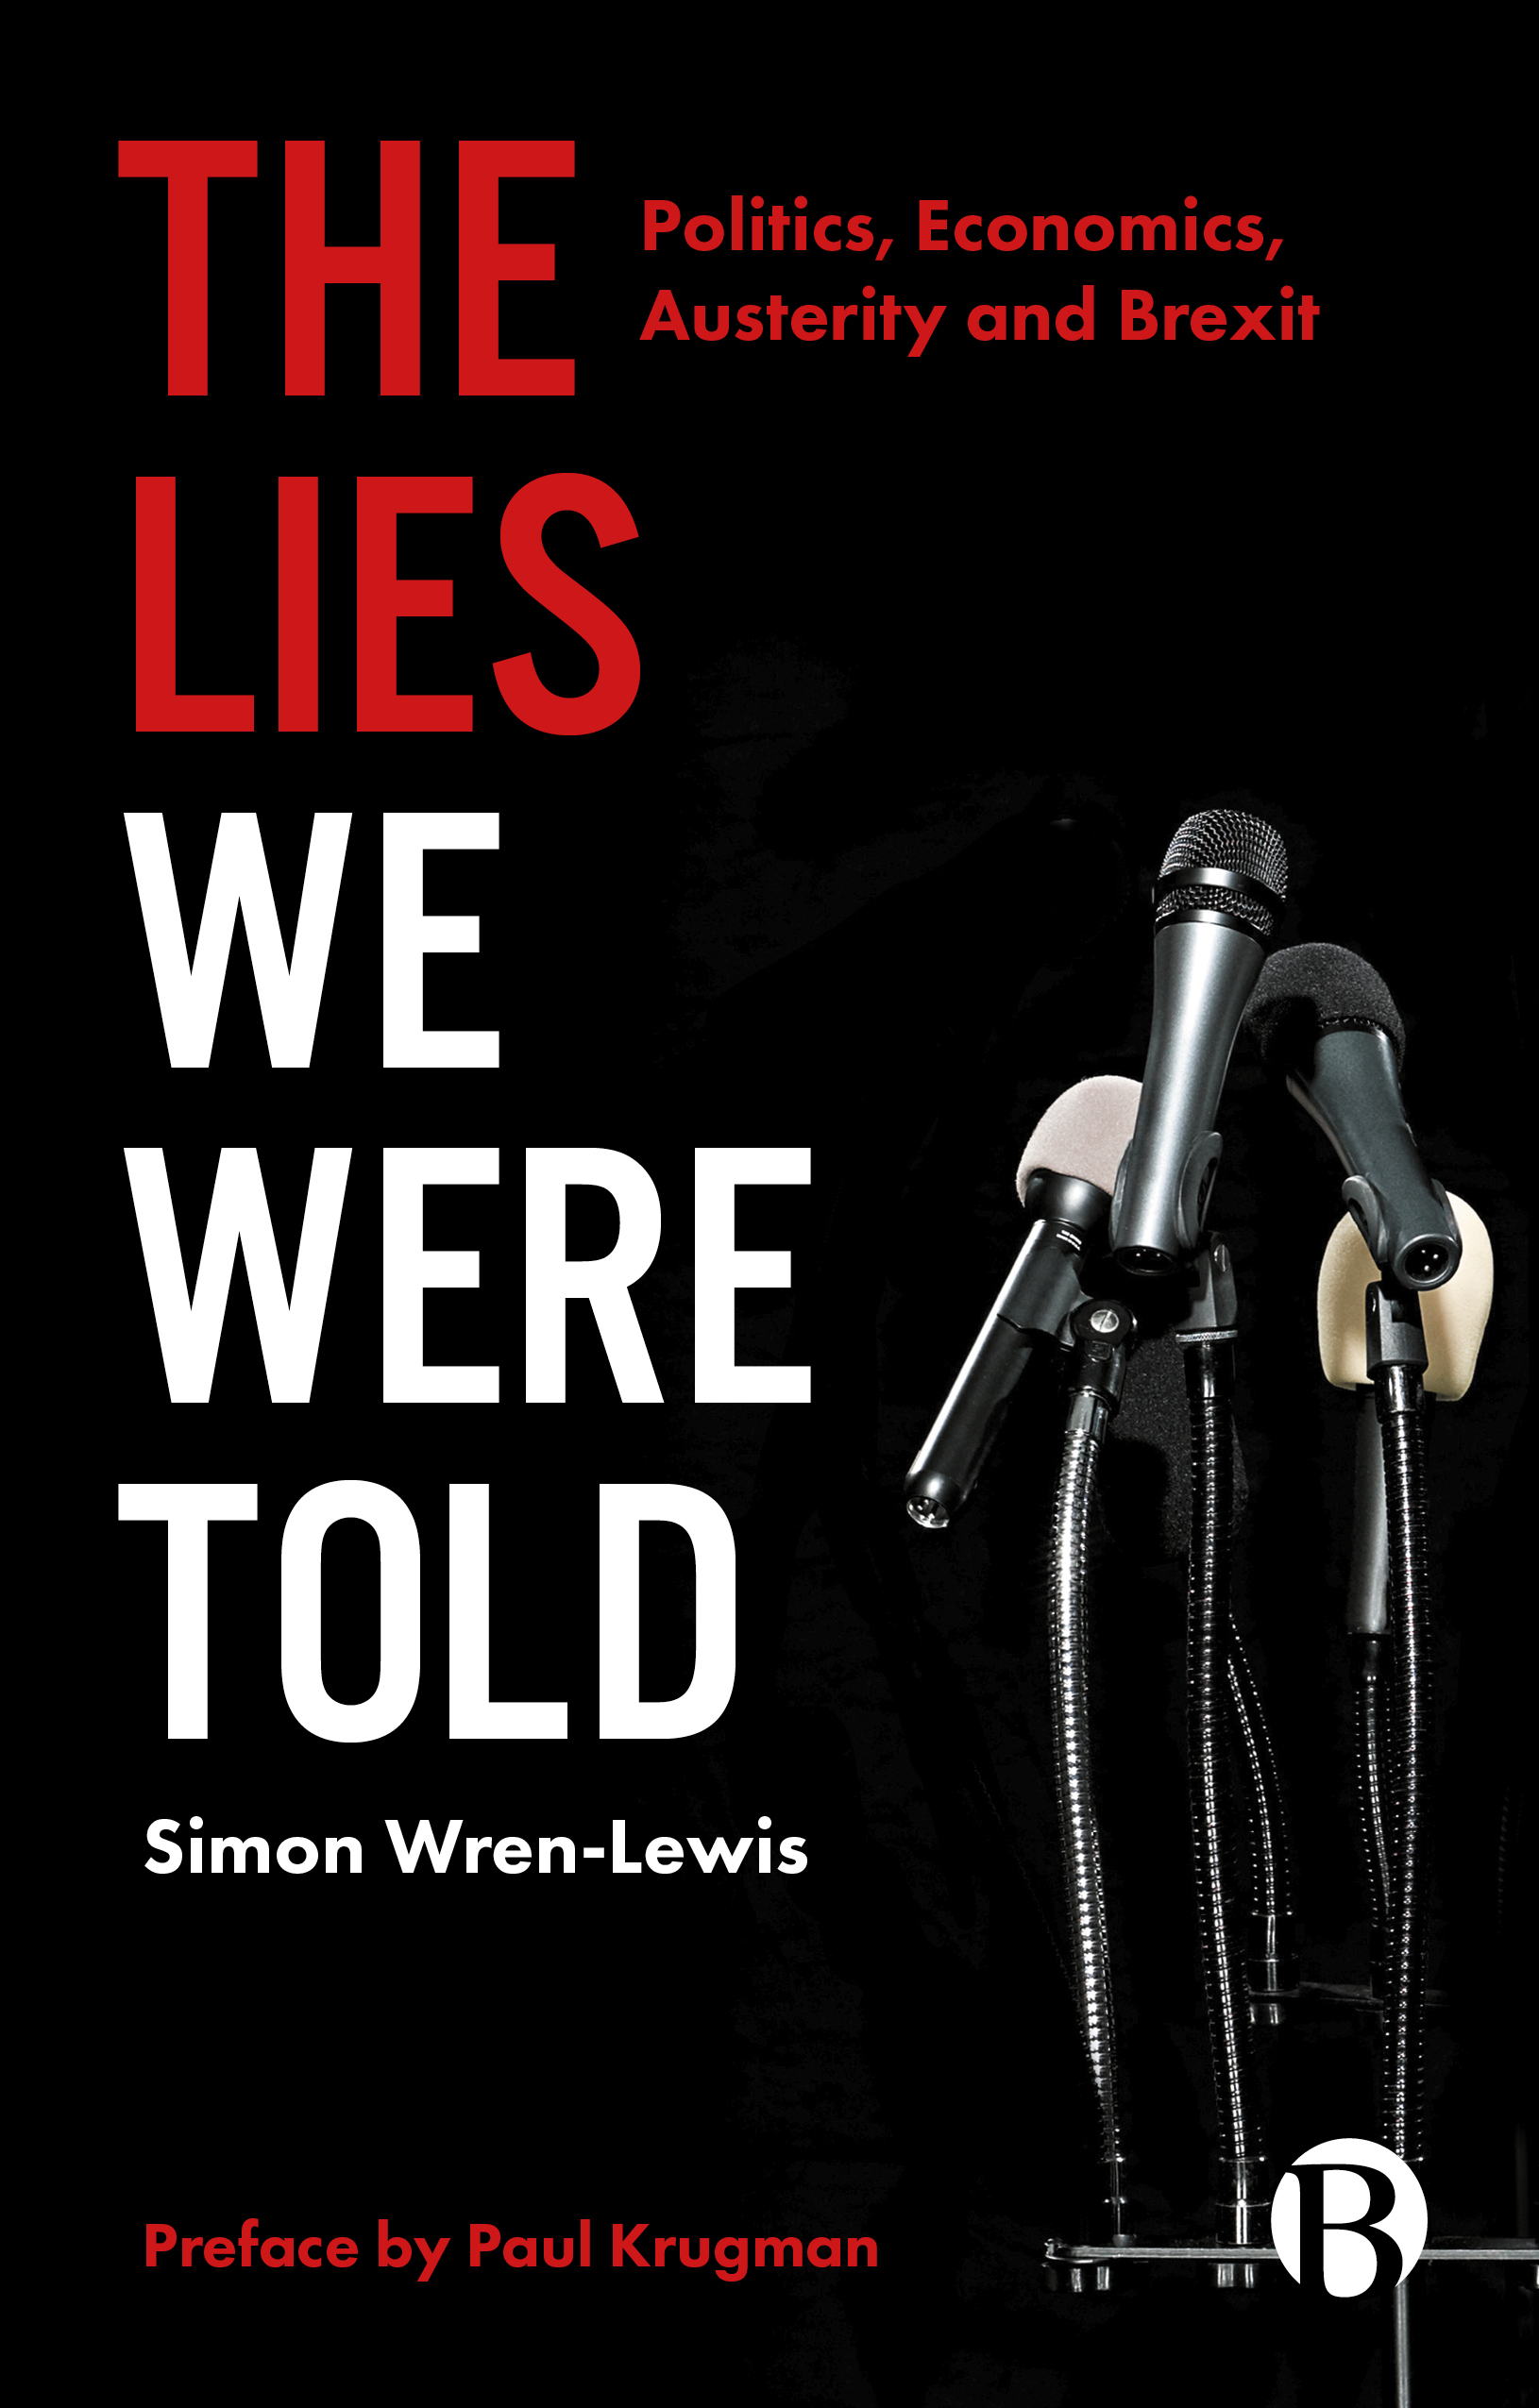 Documenting media bias and lies in Simon Wren-Lewis' new book